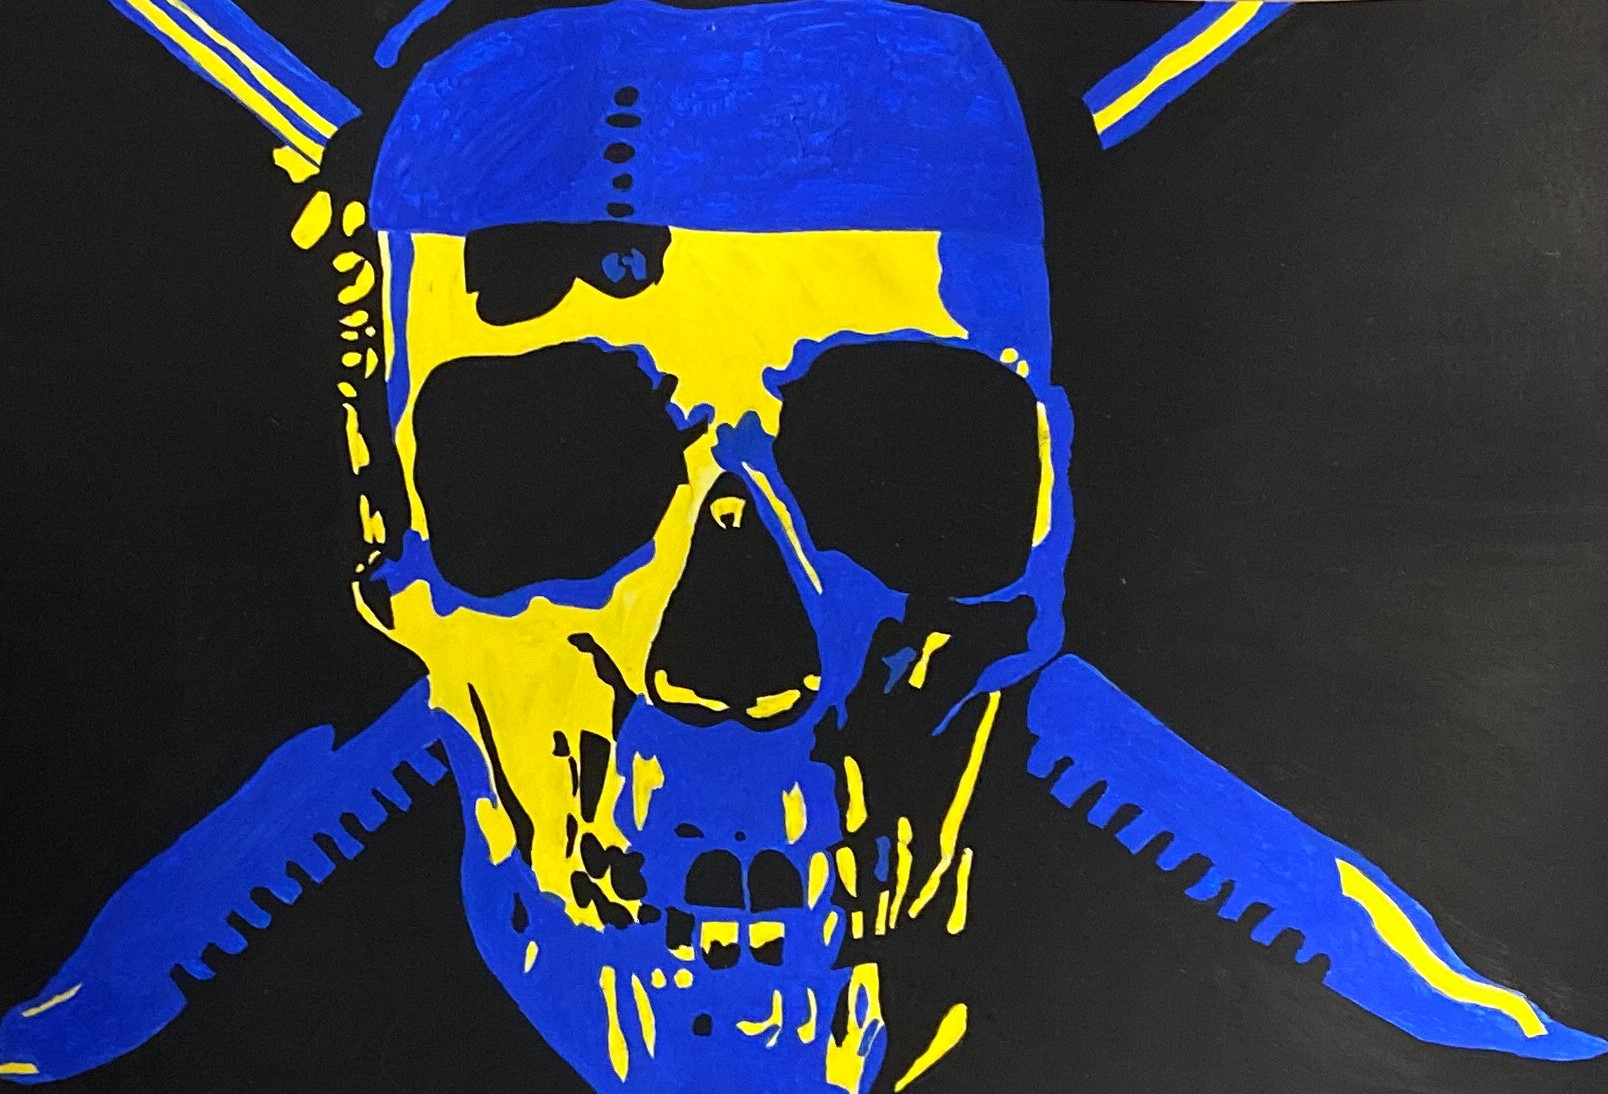 skull and crossed swords in blue and yellow